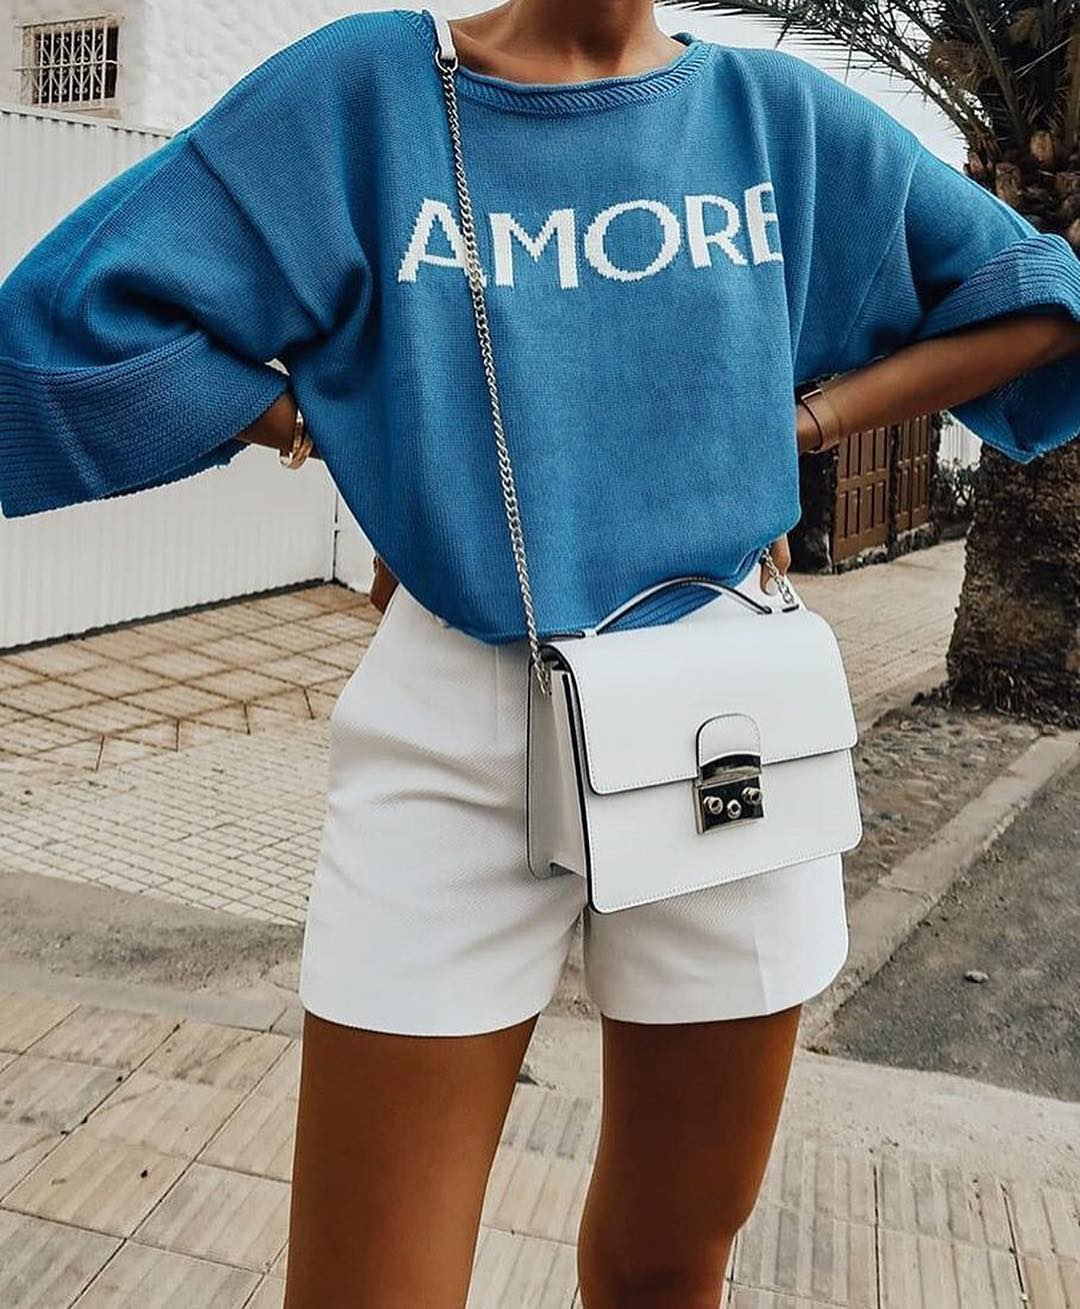 Oversized Blue Sweater And White Shorts For Spring Getaway 2020